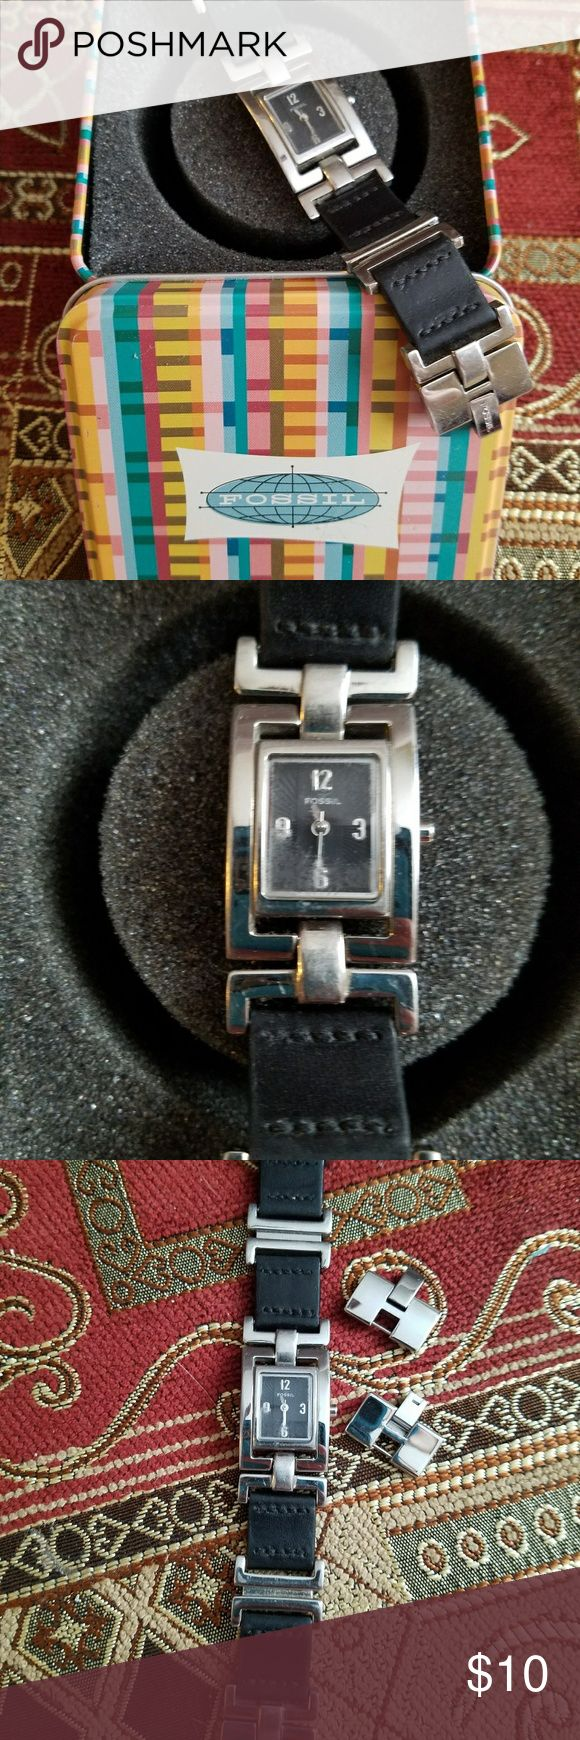 Women's Fossil Watch Women's Fossil Watch with black leather and silver link band and black face with silver numbers. Has additional links to extend the size of the band. Glass on face has stuffing. Well loved but still a great watch. Needs a new battery. Smoke free, pet friendly home. Fossil Accessories Watches